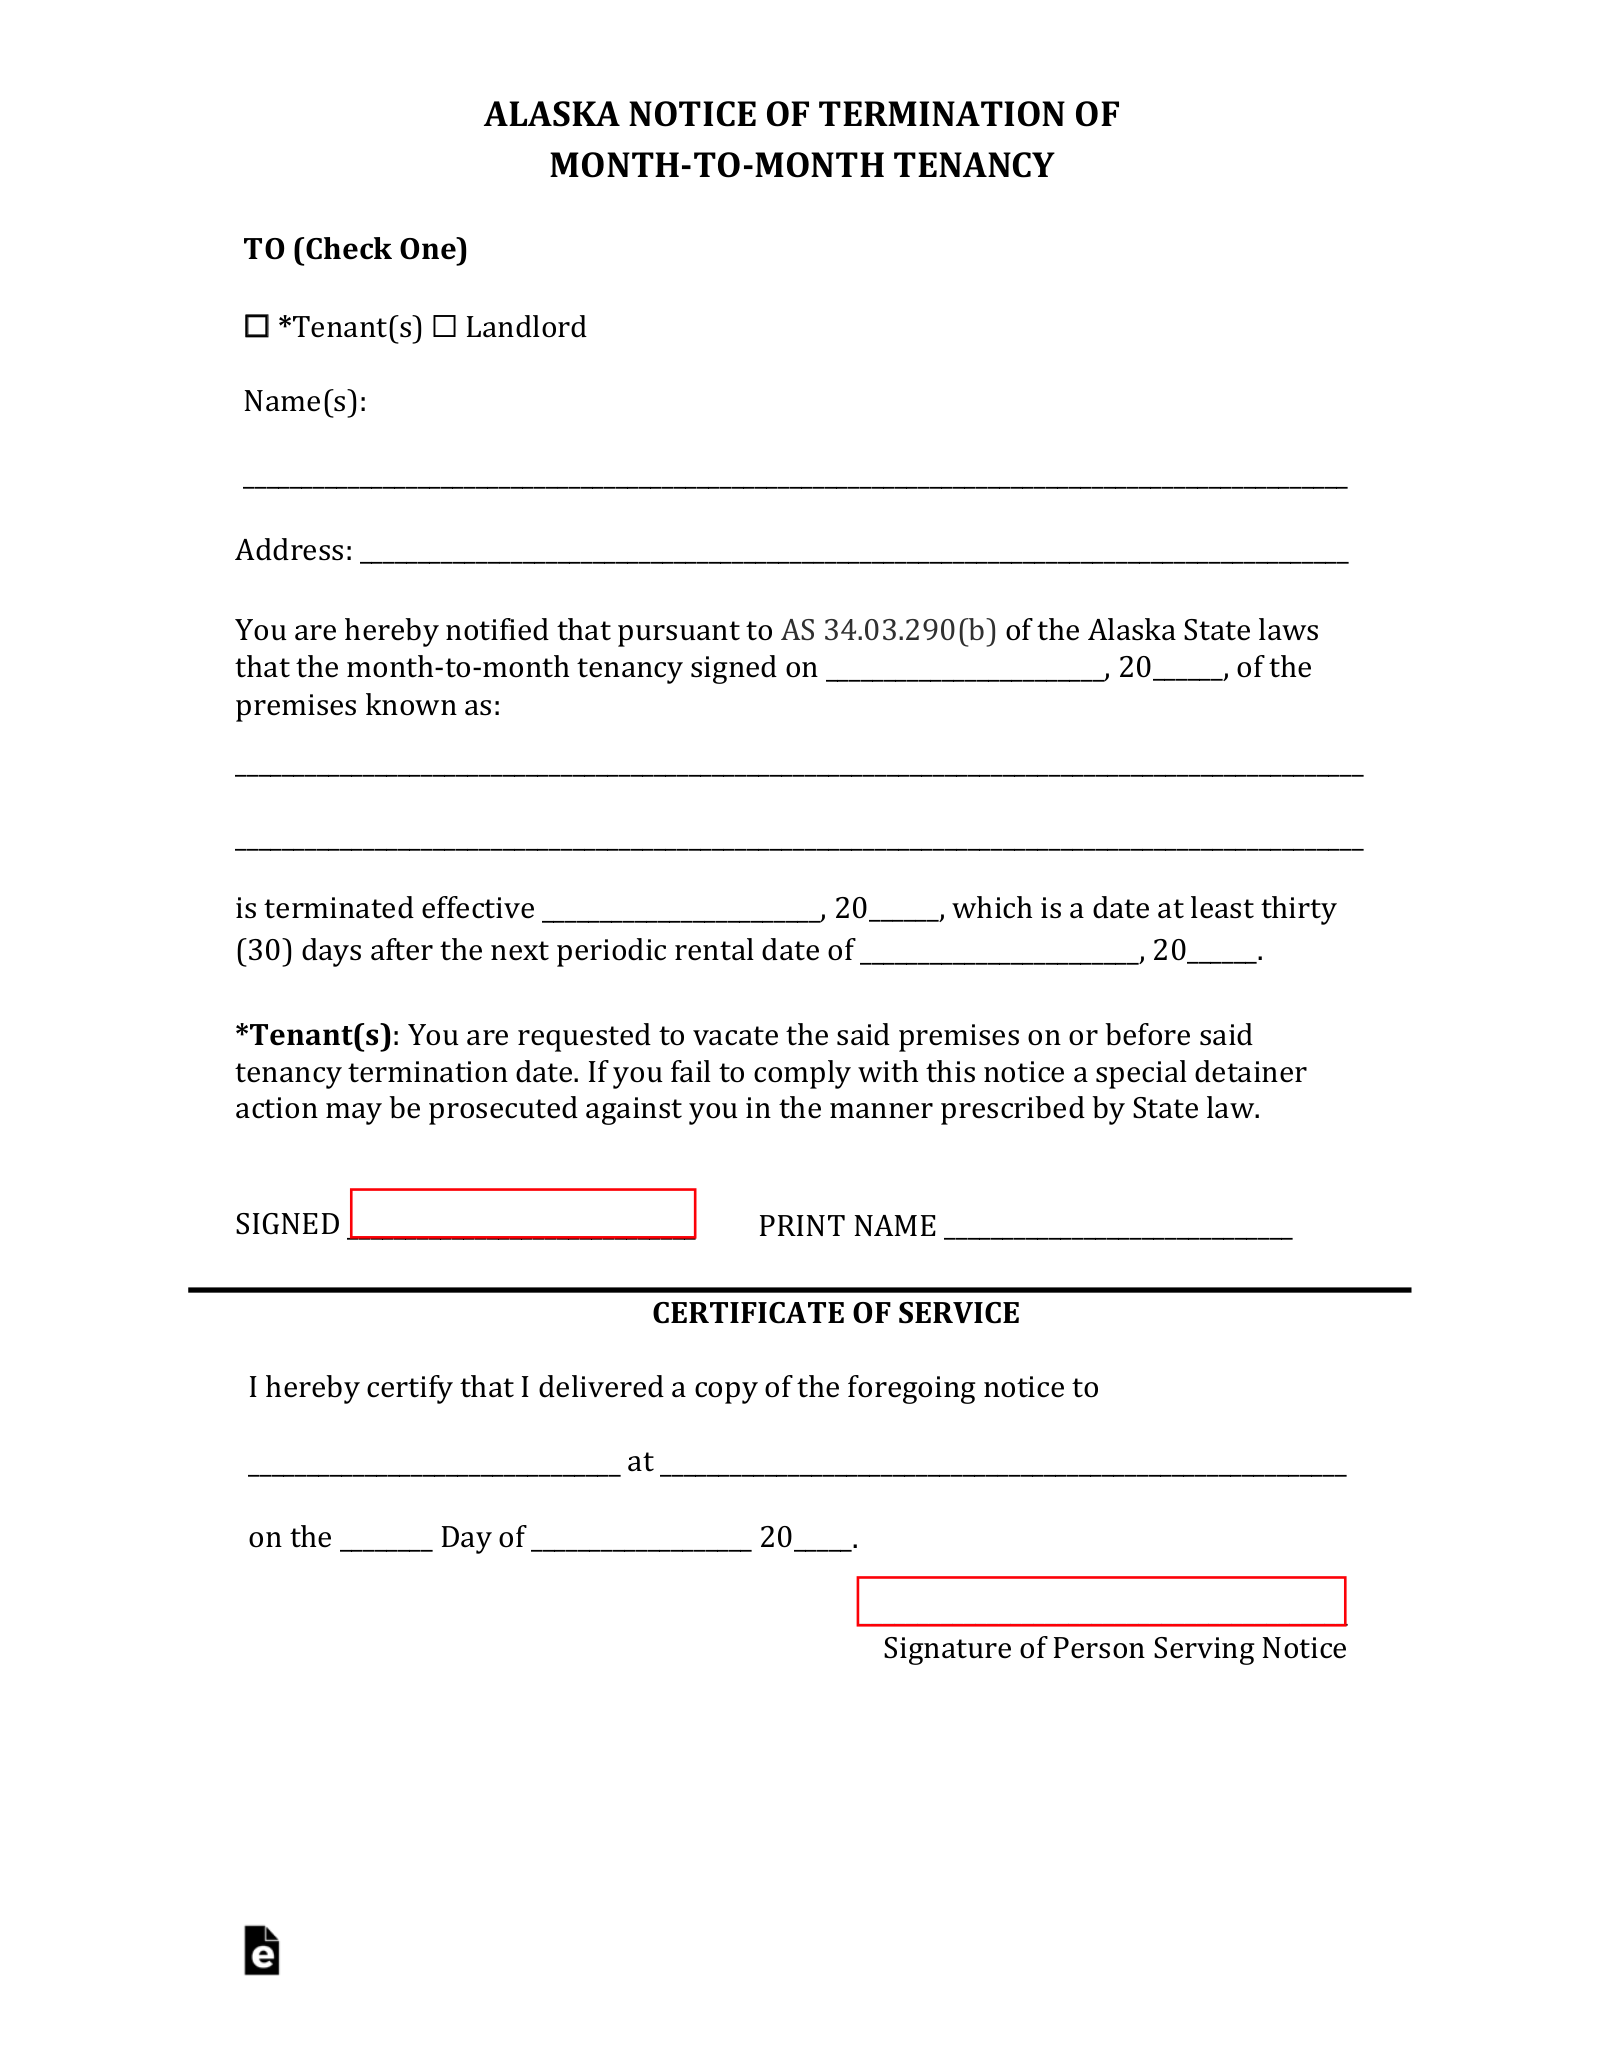 Alaska Termination Lease Letter Form 30 Day Notice